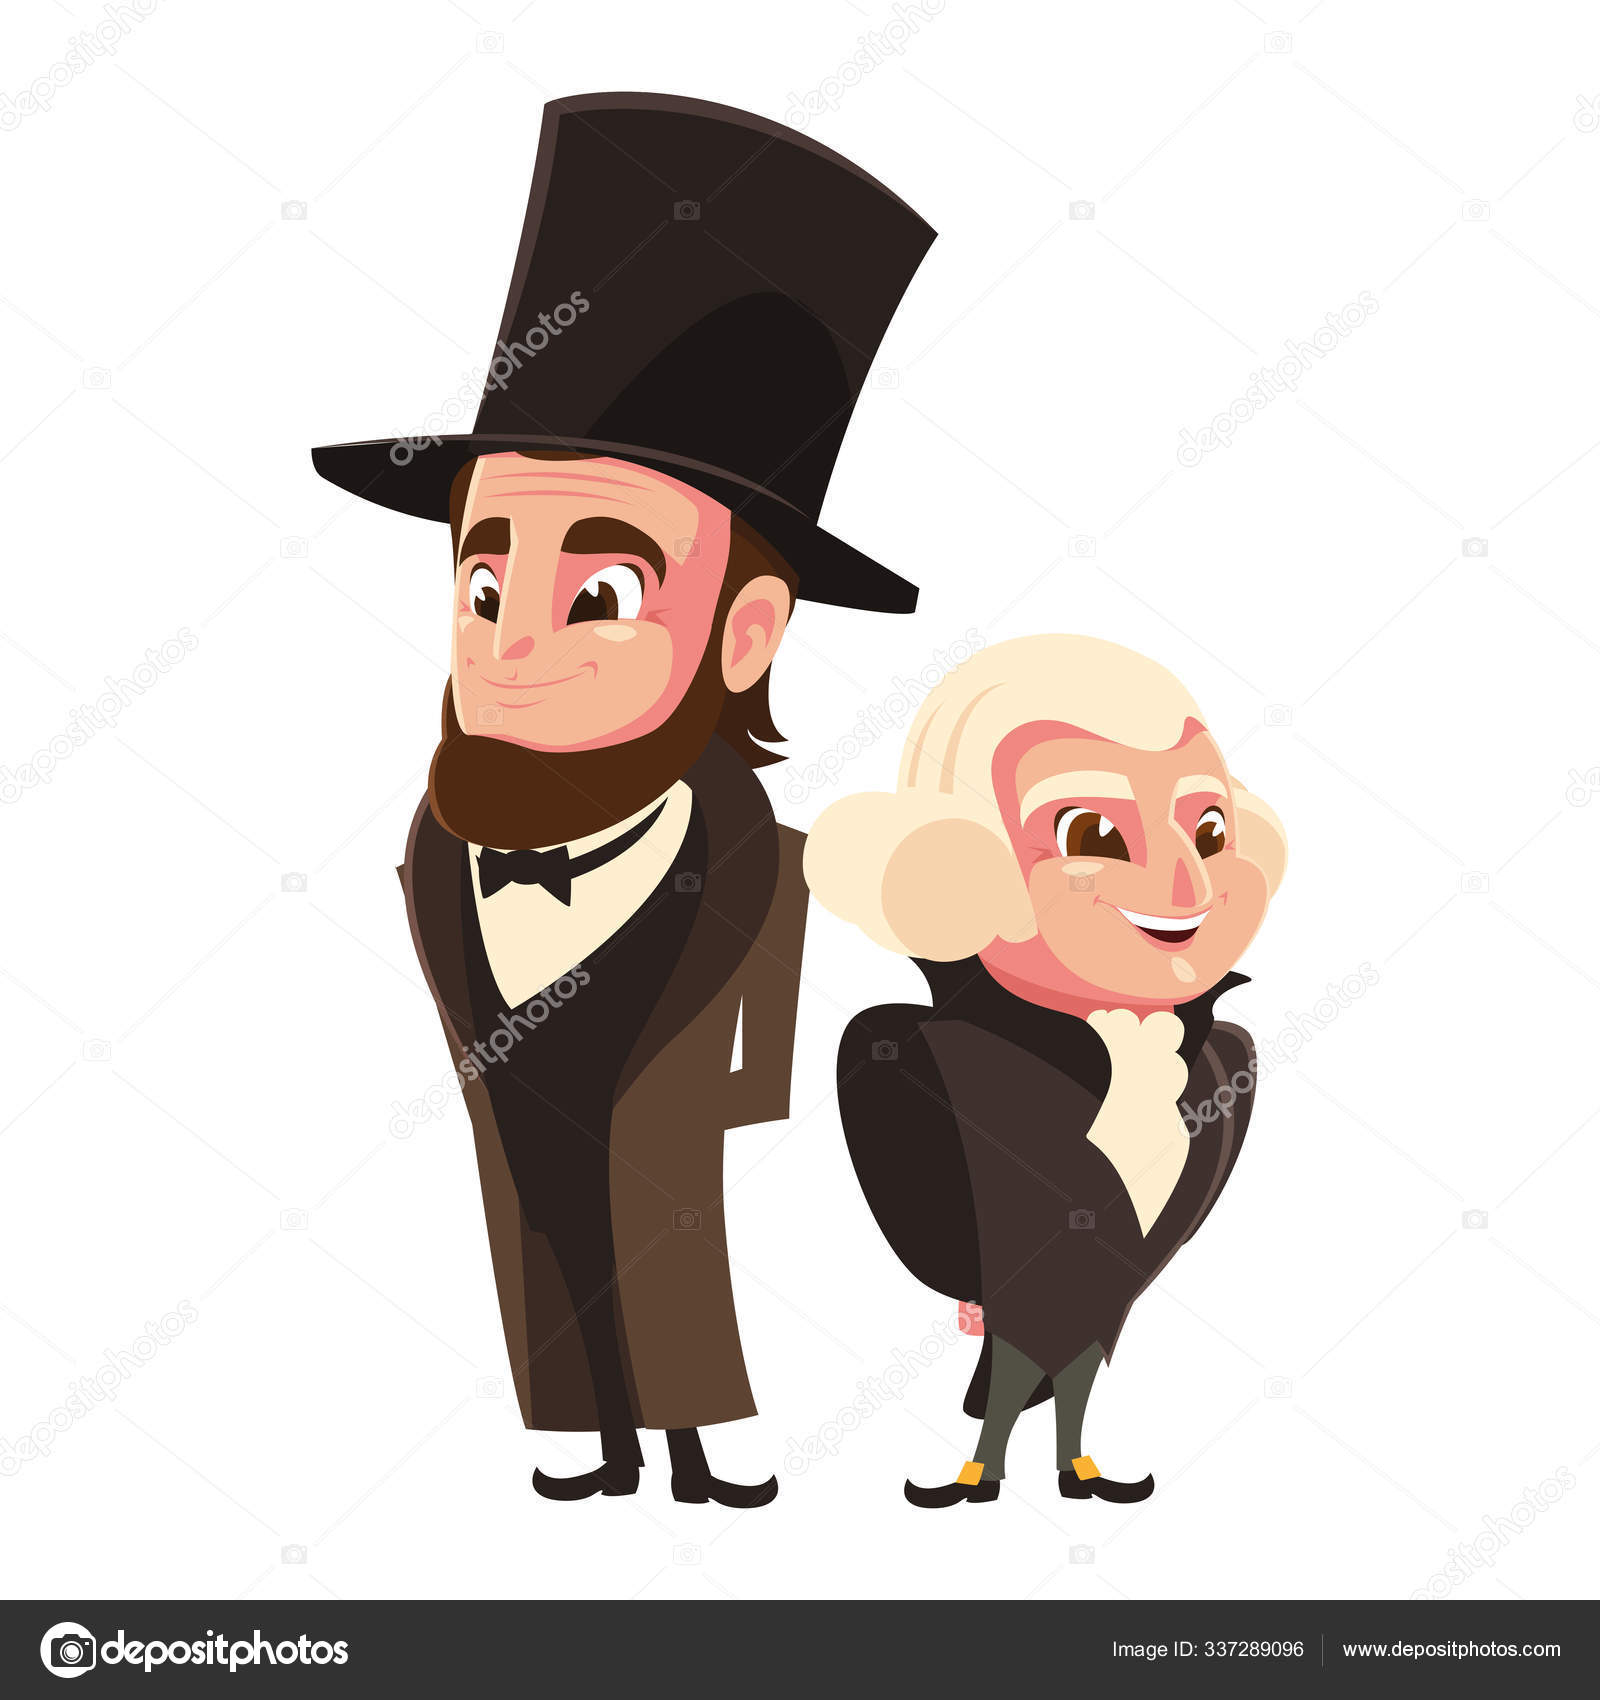 Desenho Animado De Presidentes George Washington E Abraham Lincoln